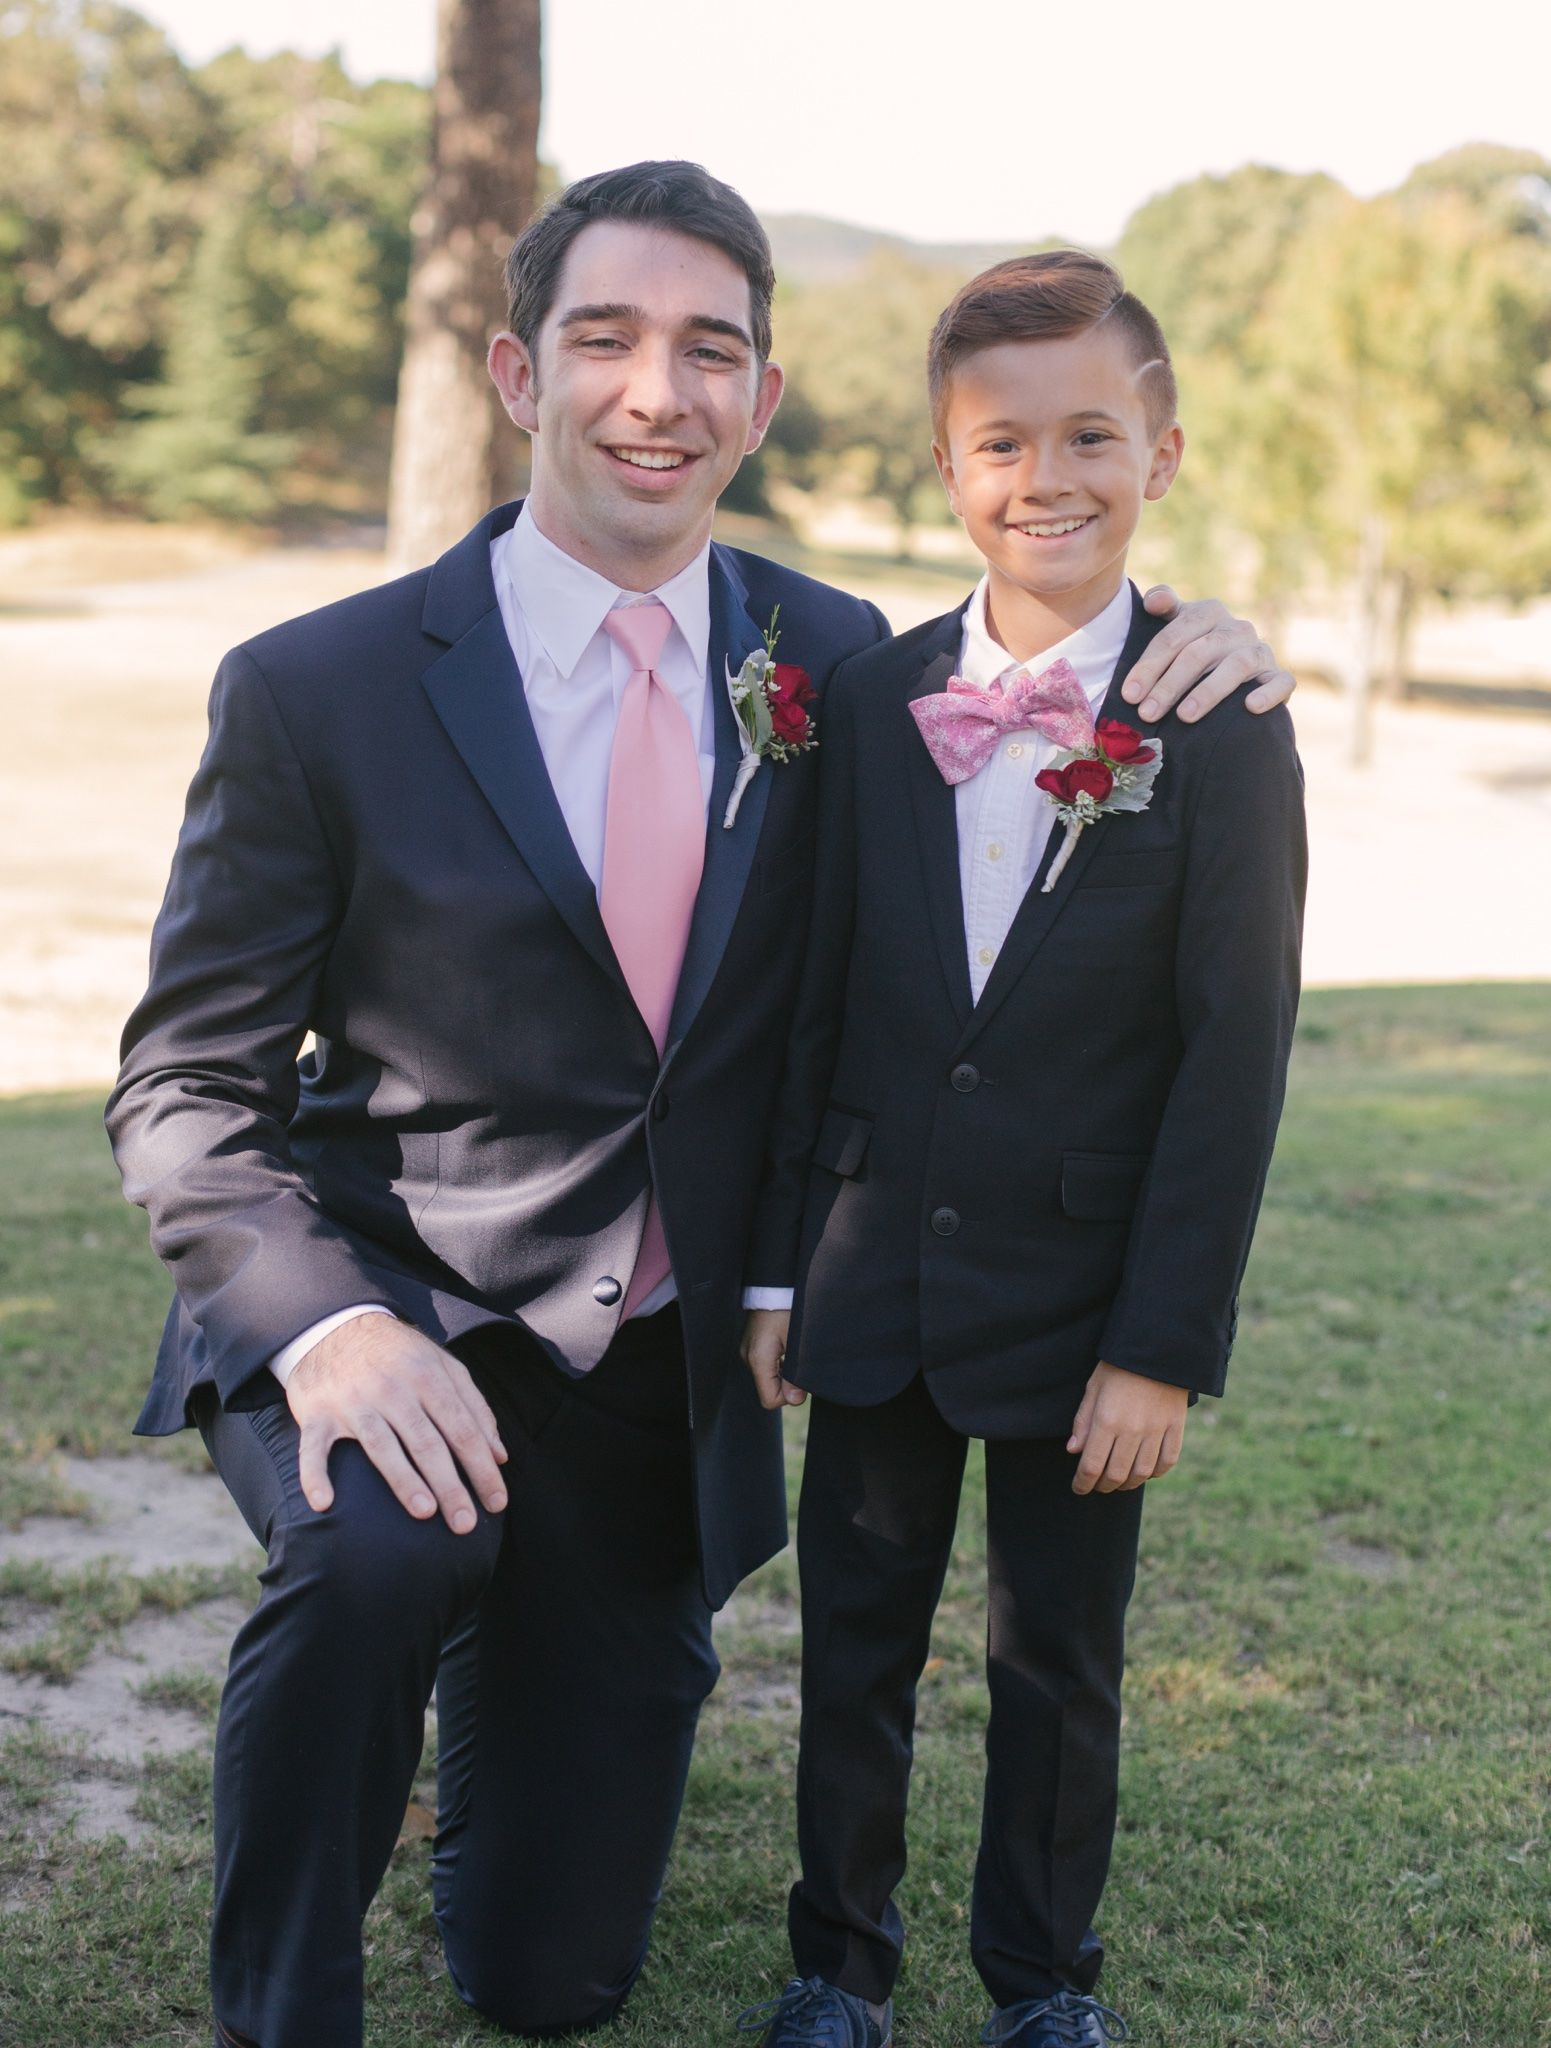 Groom and ring bearer southern wedding tiered wedding